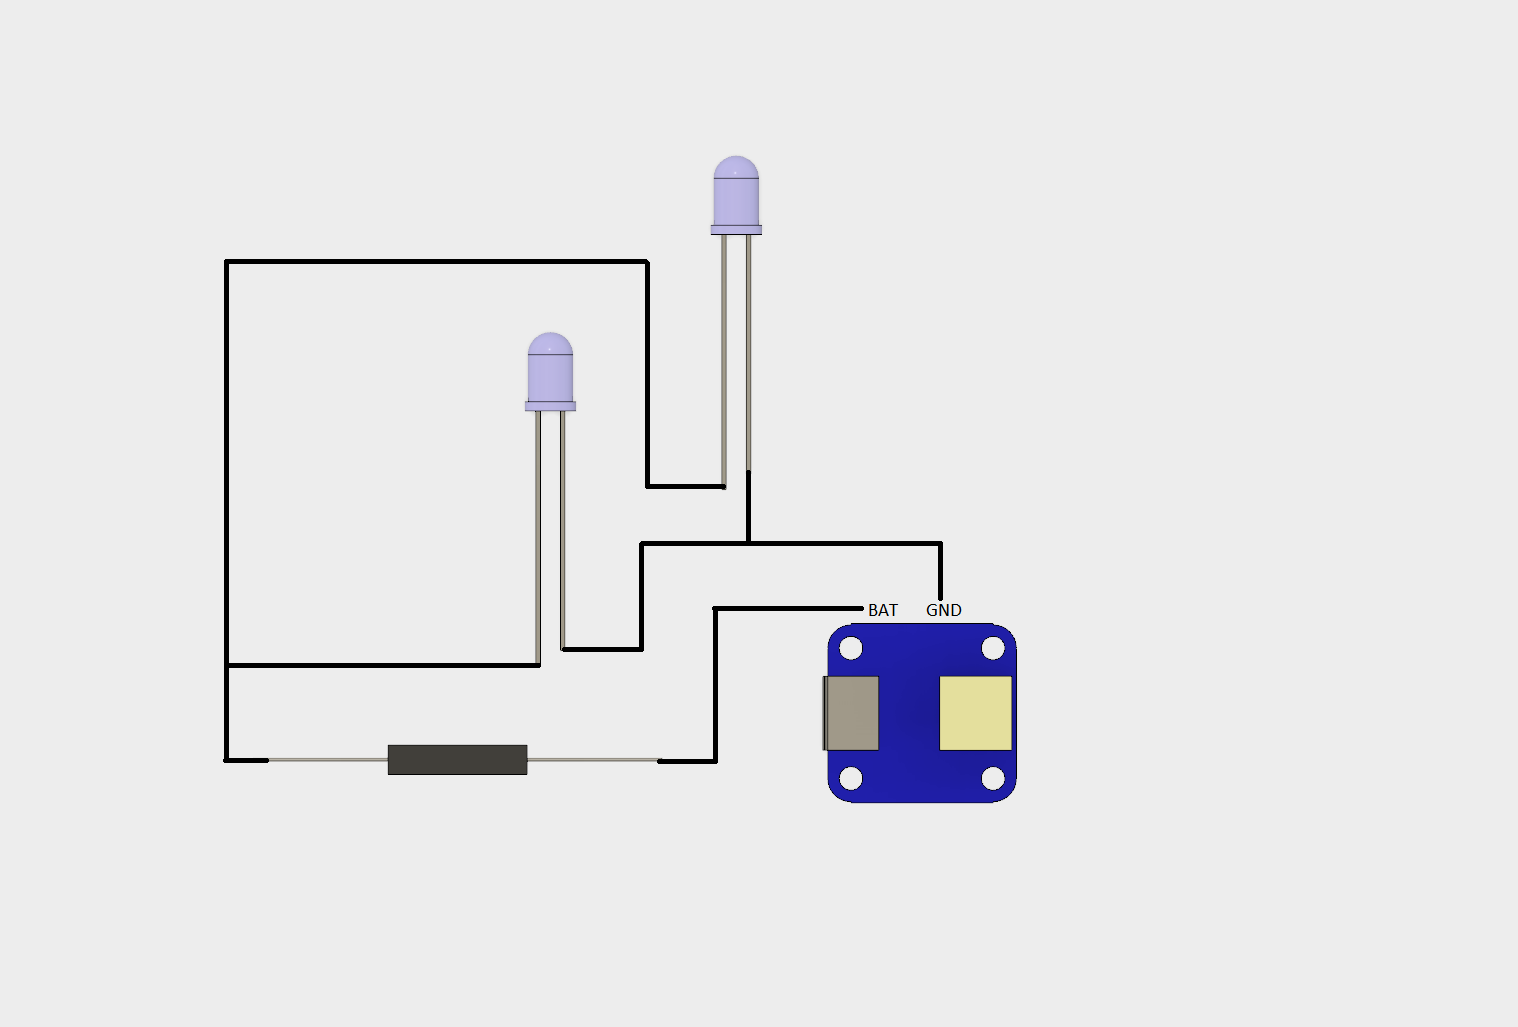 Pretty basic circuit. My drawing is kinda crap though. I'm working on figuring out the best way to show these things.